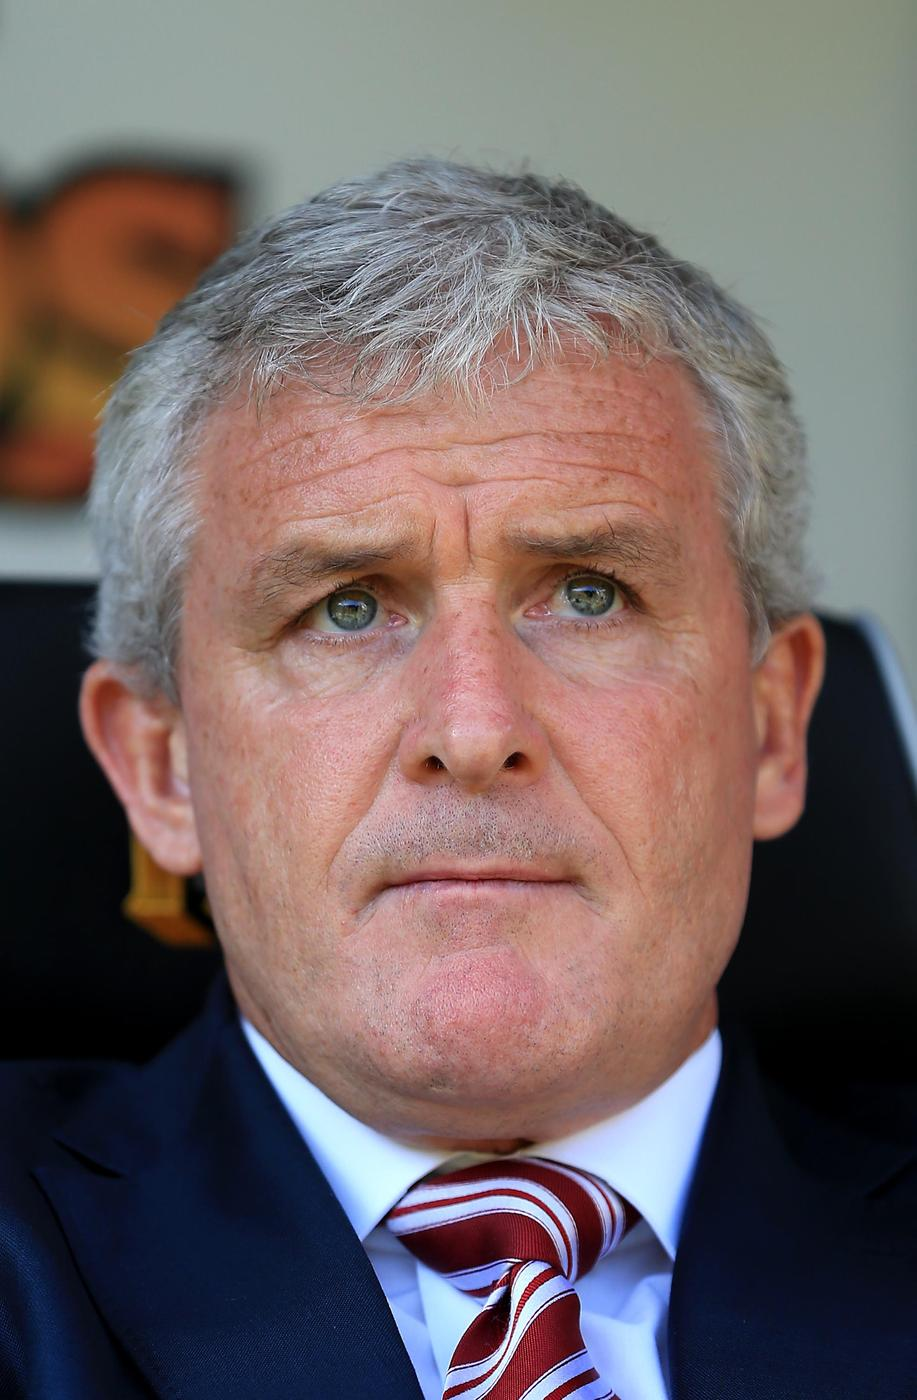 Stoke City's start to the Premier League season has been a worrying one, but the Potters luck will change